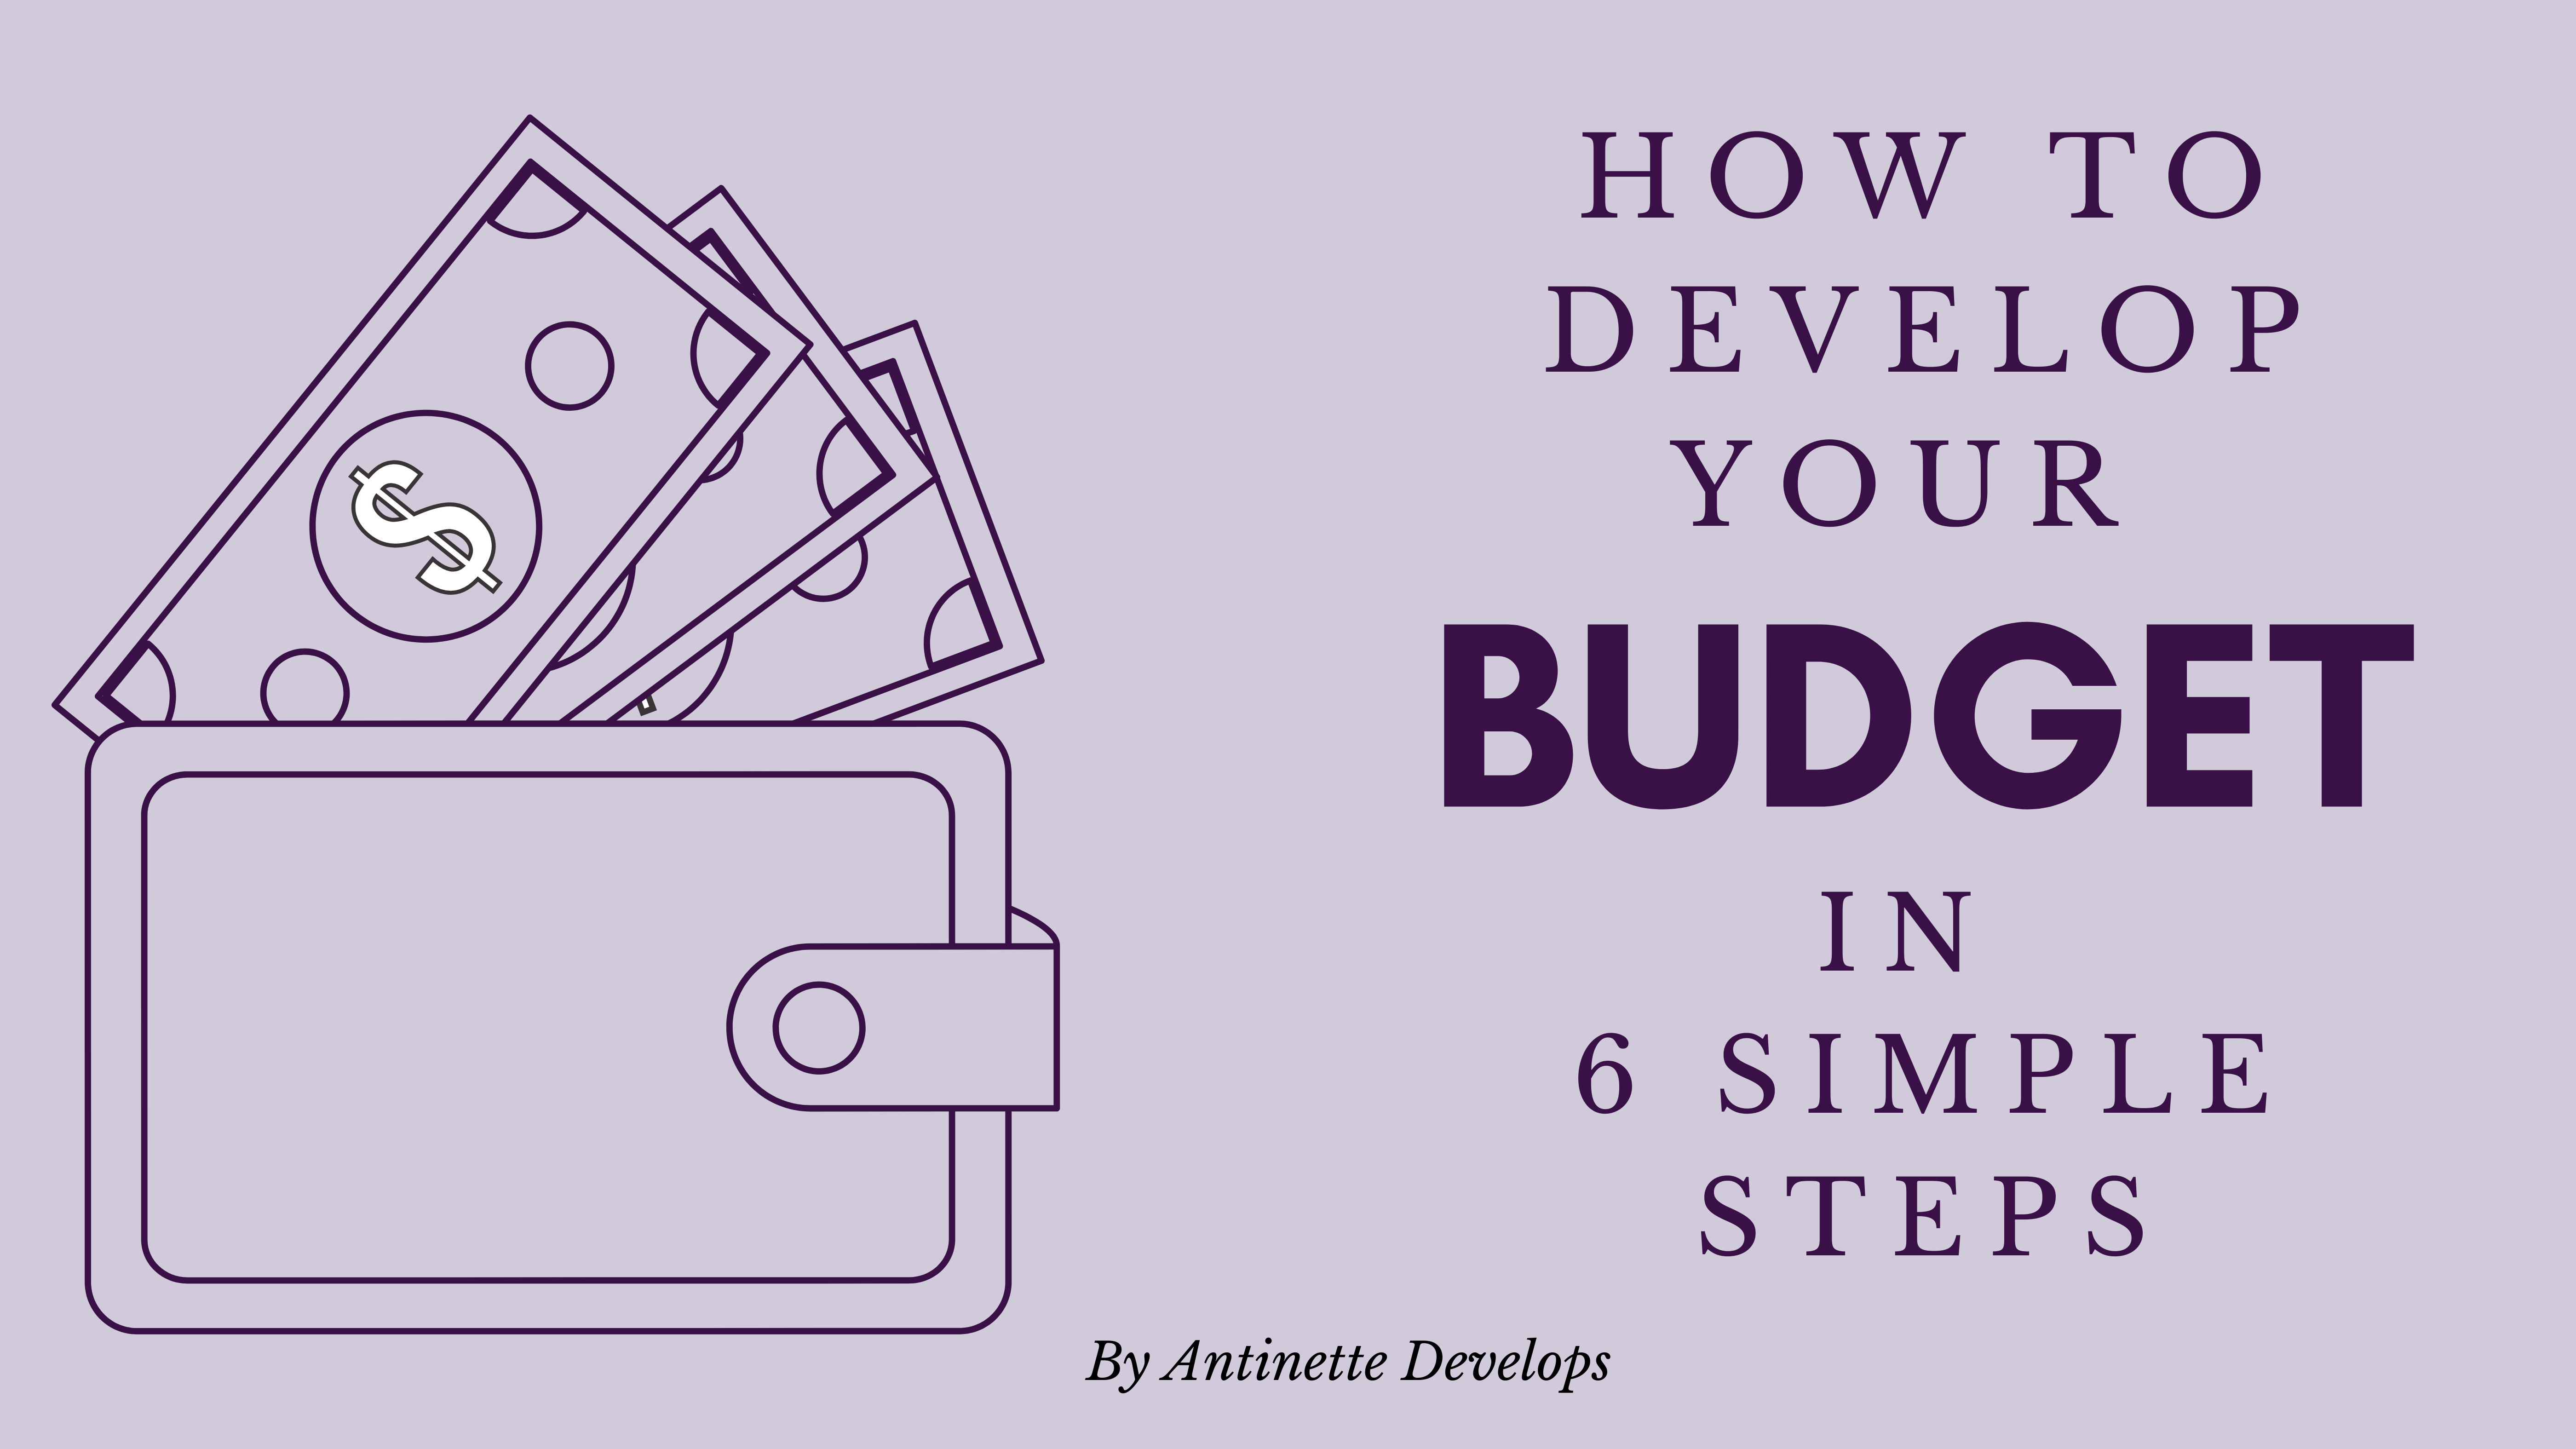 How to Develop Your Budget in 6 Simple Steps